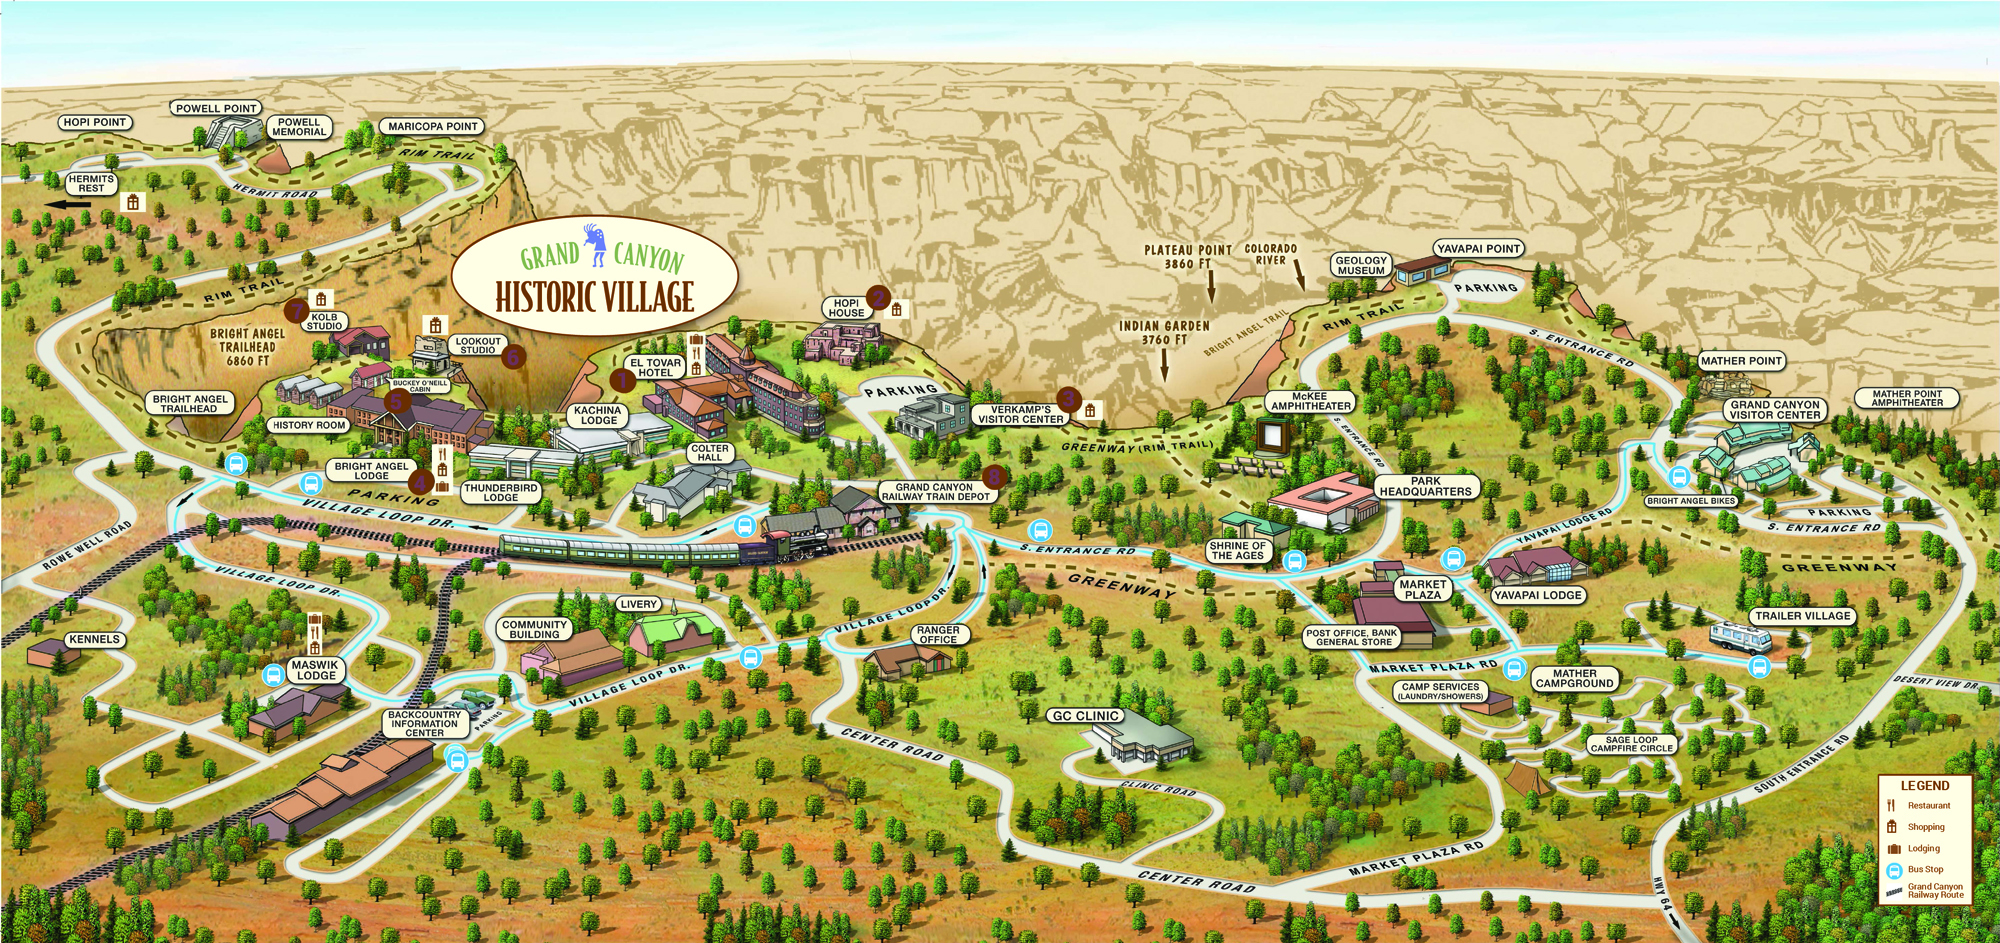 Historic Village | Grand Canyon National Park Lodges